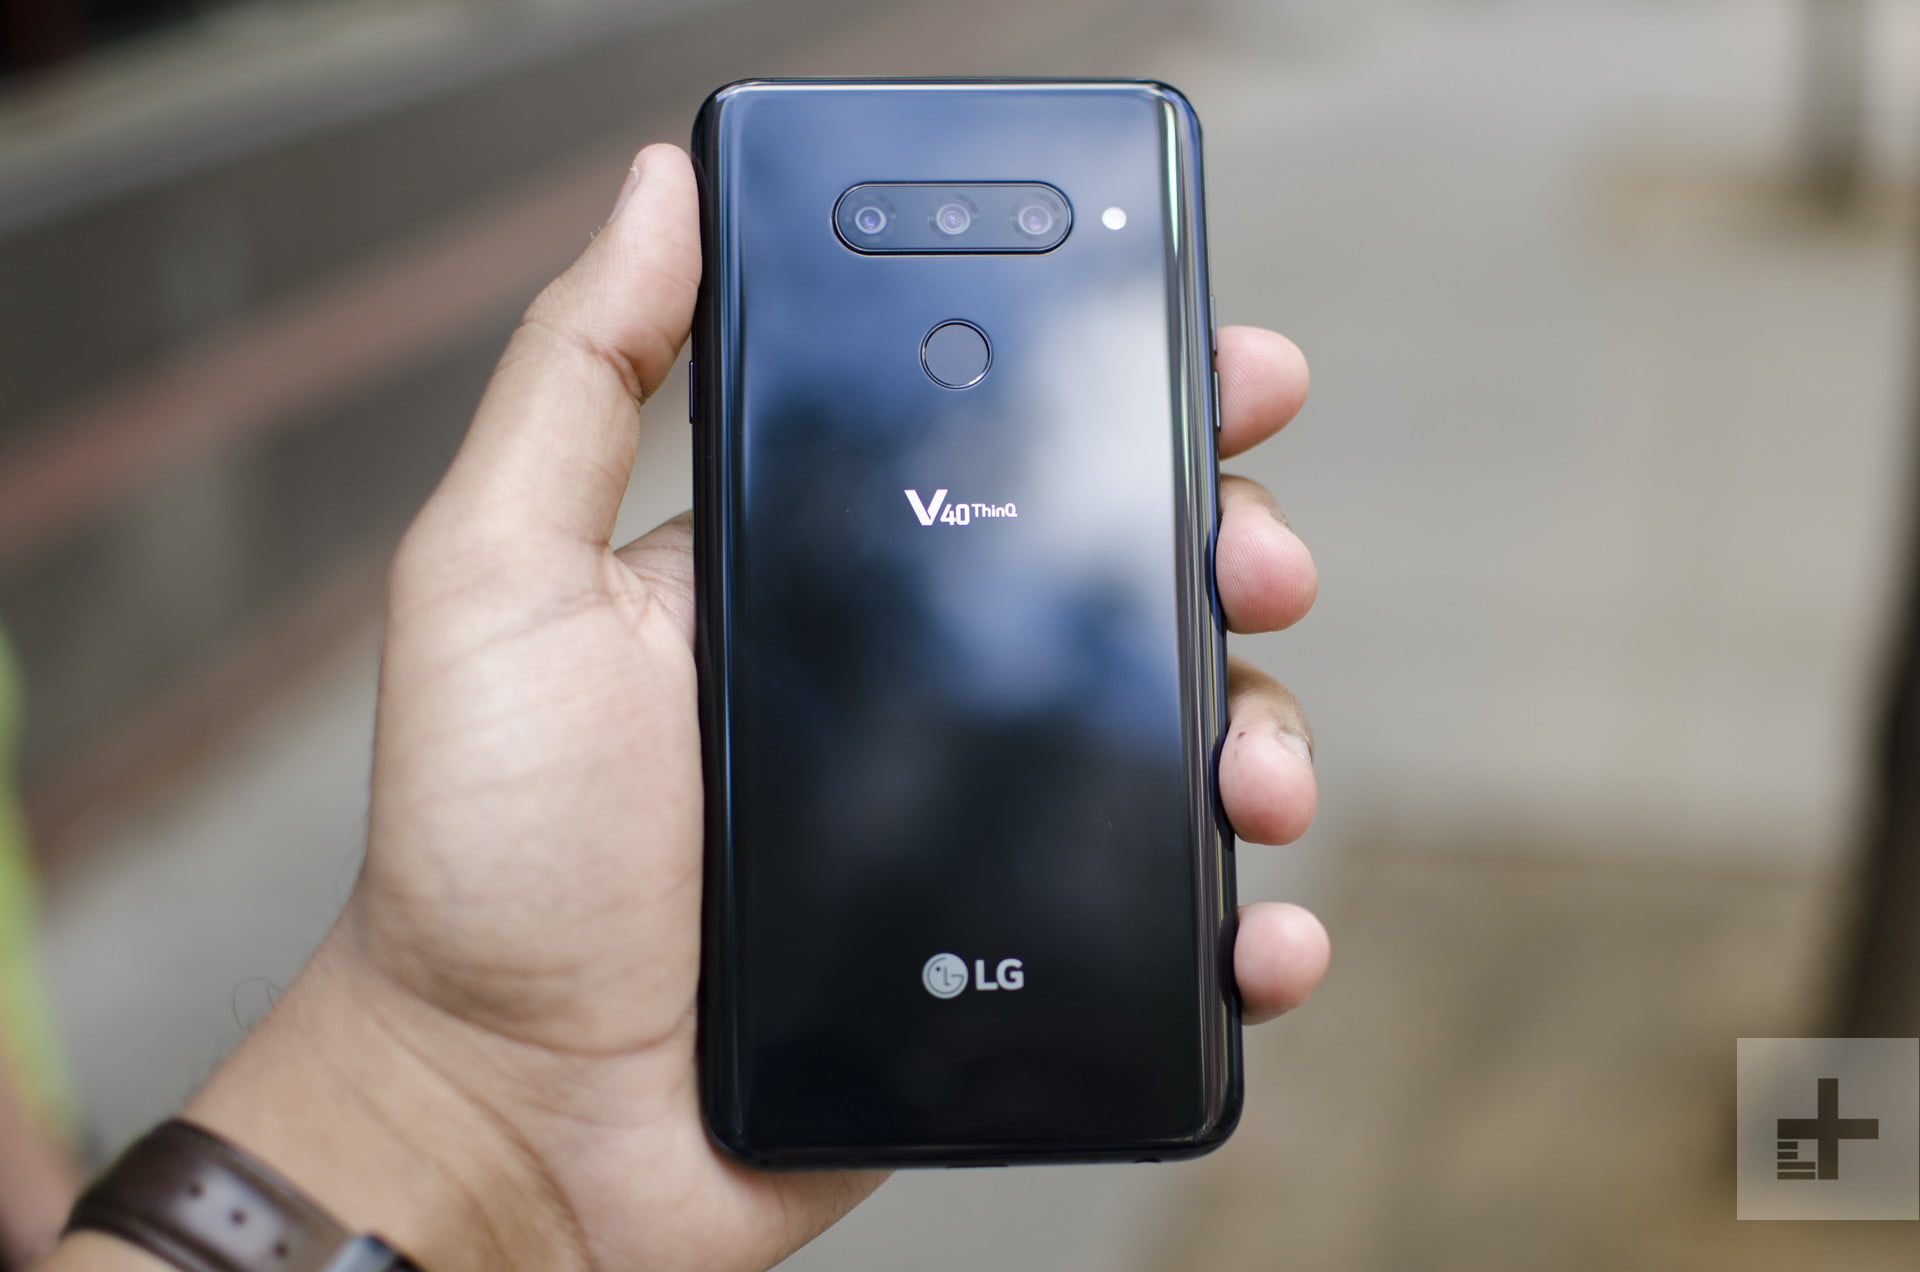 LG V40 ThinQ: News, Features, Specs, Price, Release, and More